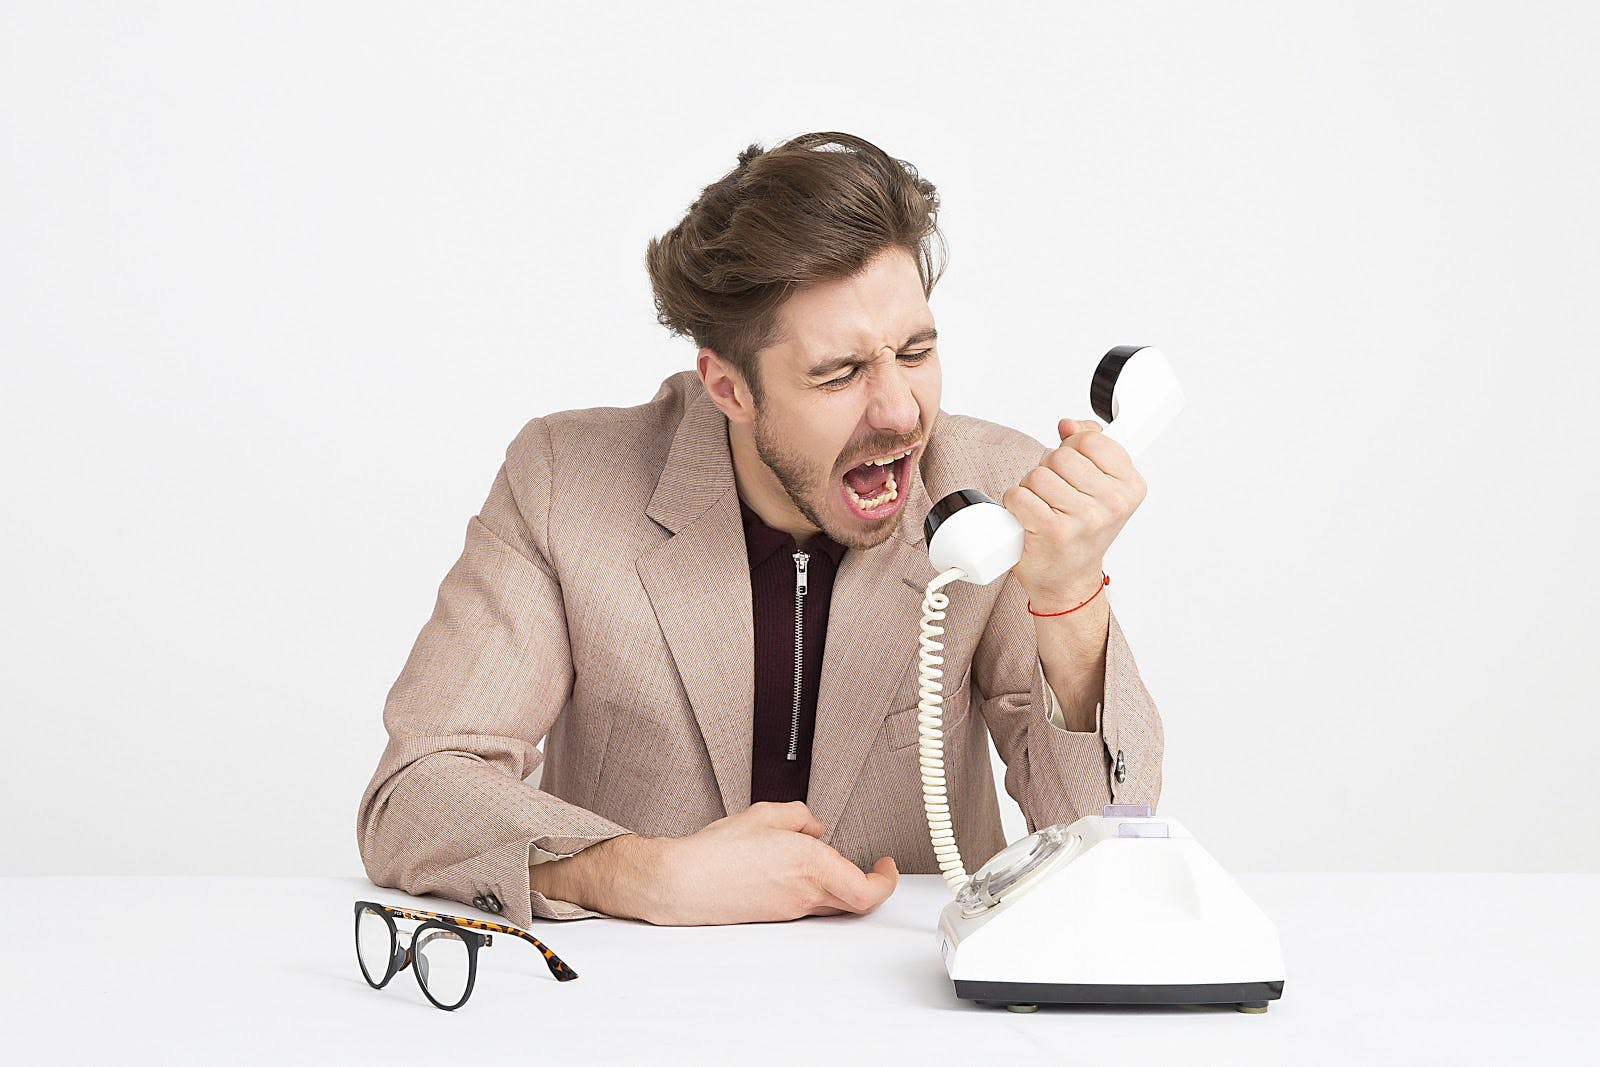 Person yelling into phone.